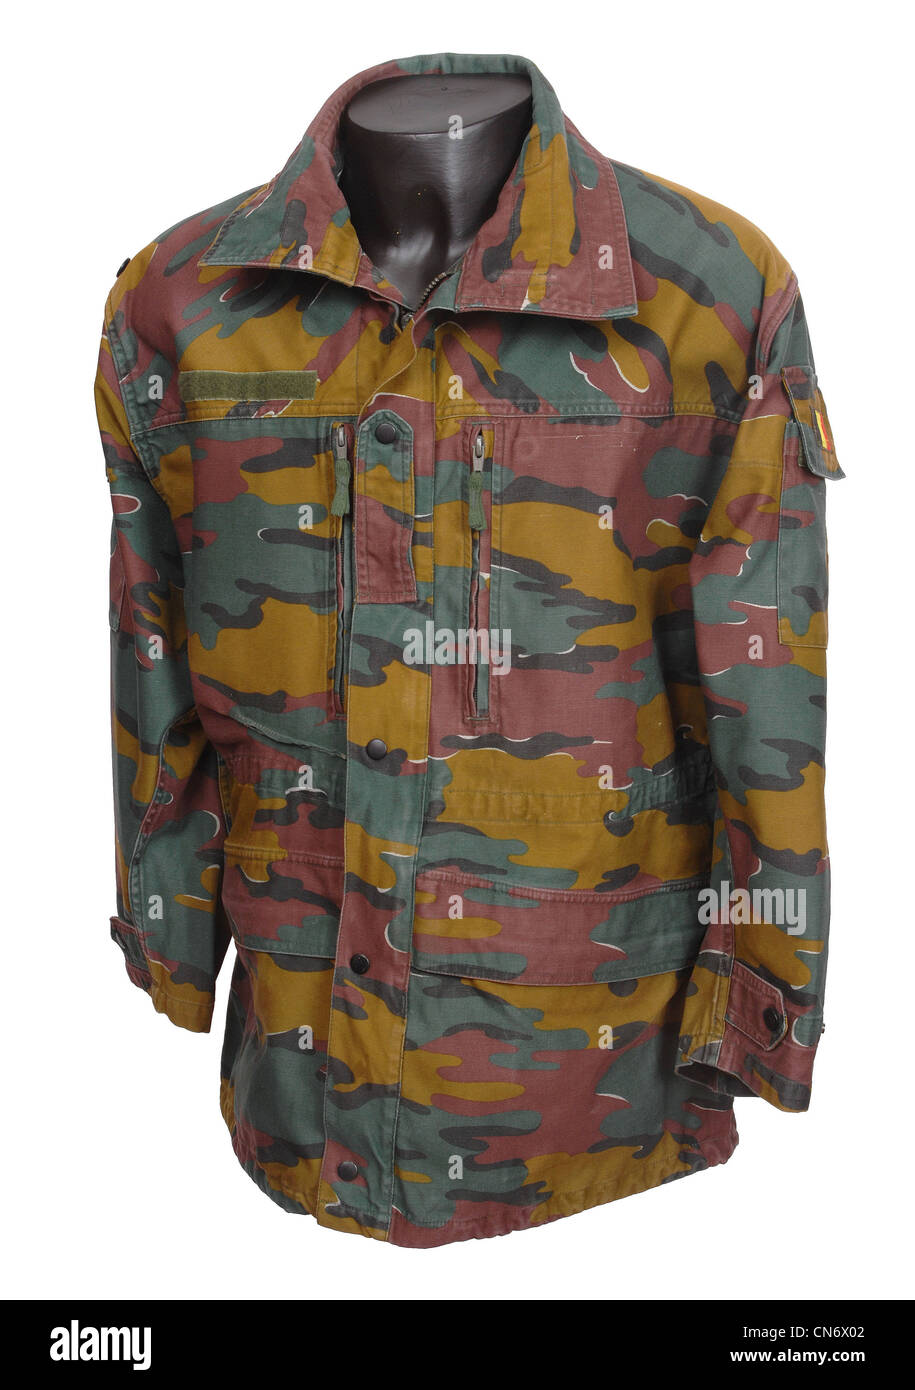 Camouflage clothing as used by military forces Belgian Jigsaw camo - Stock Image